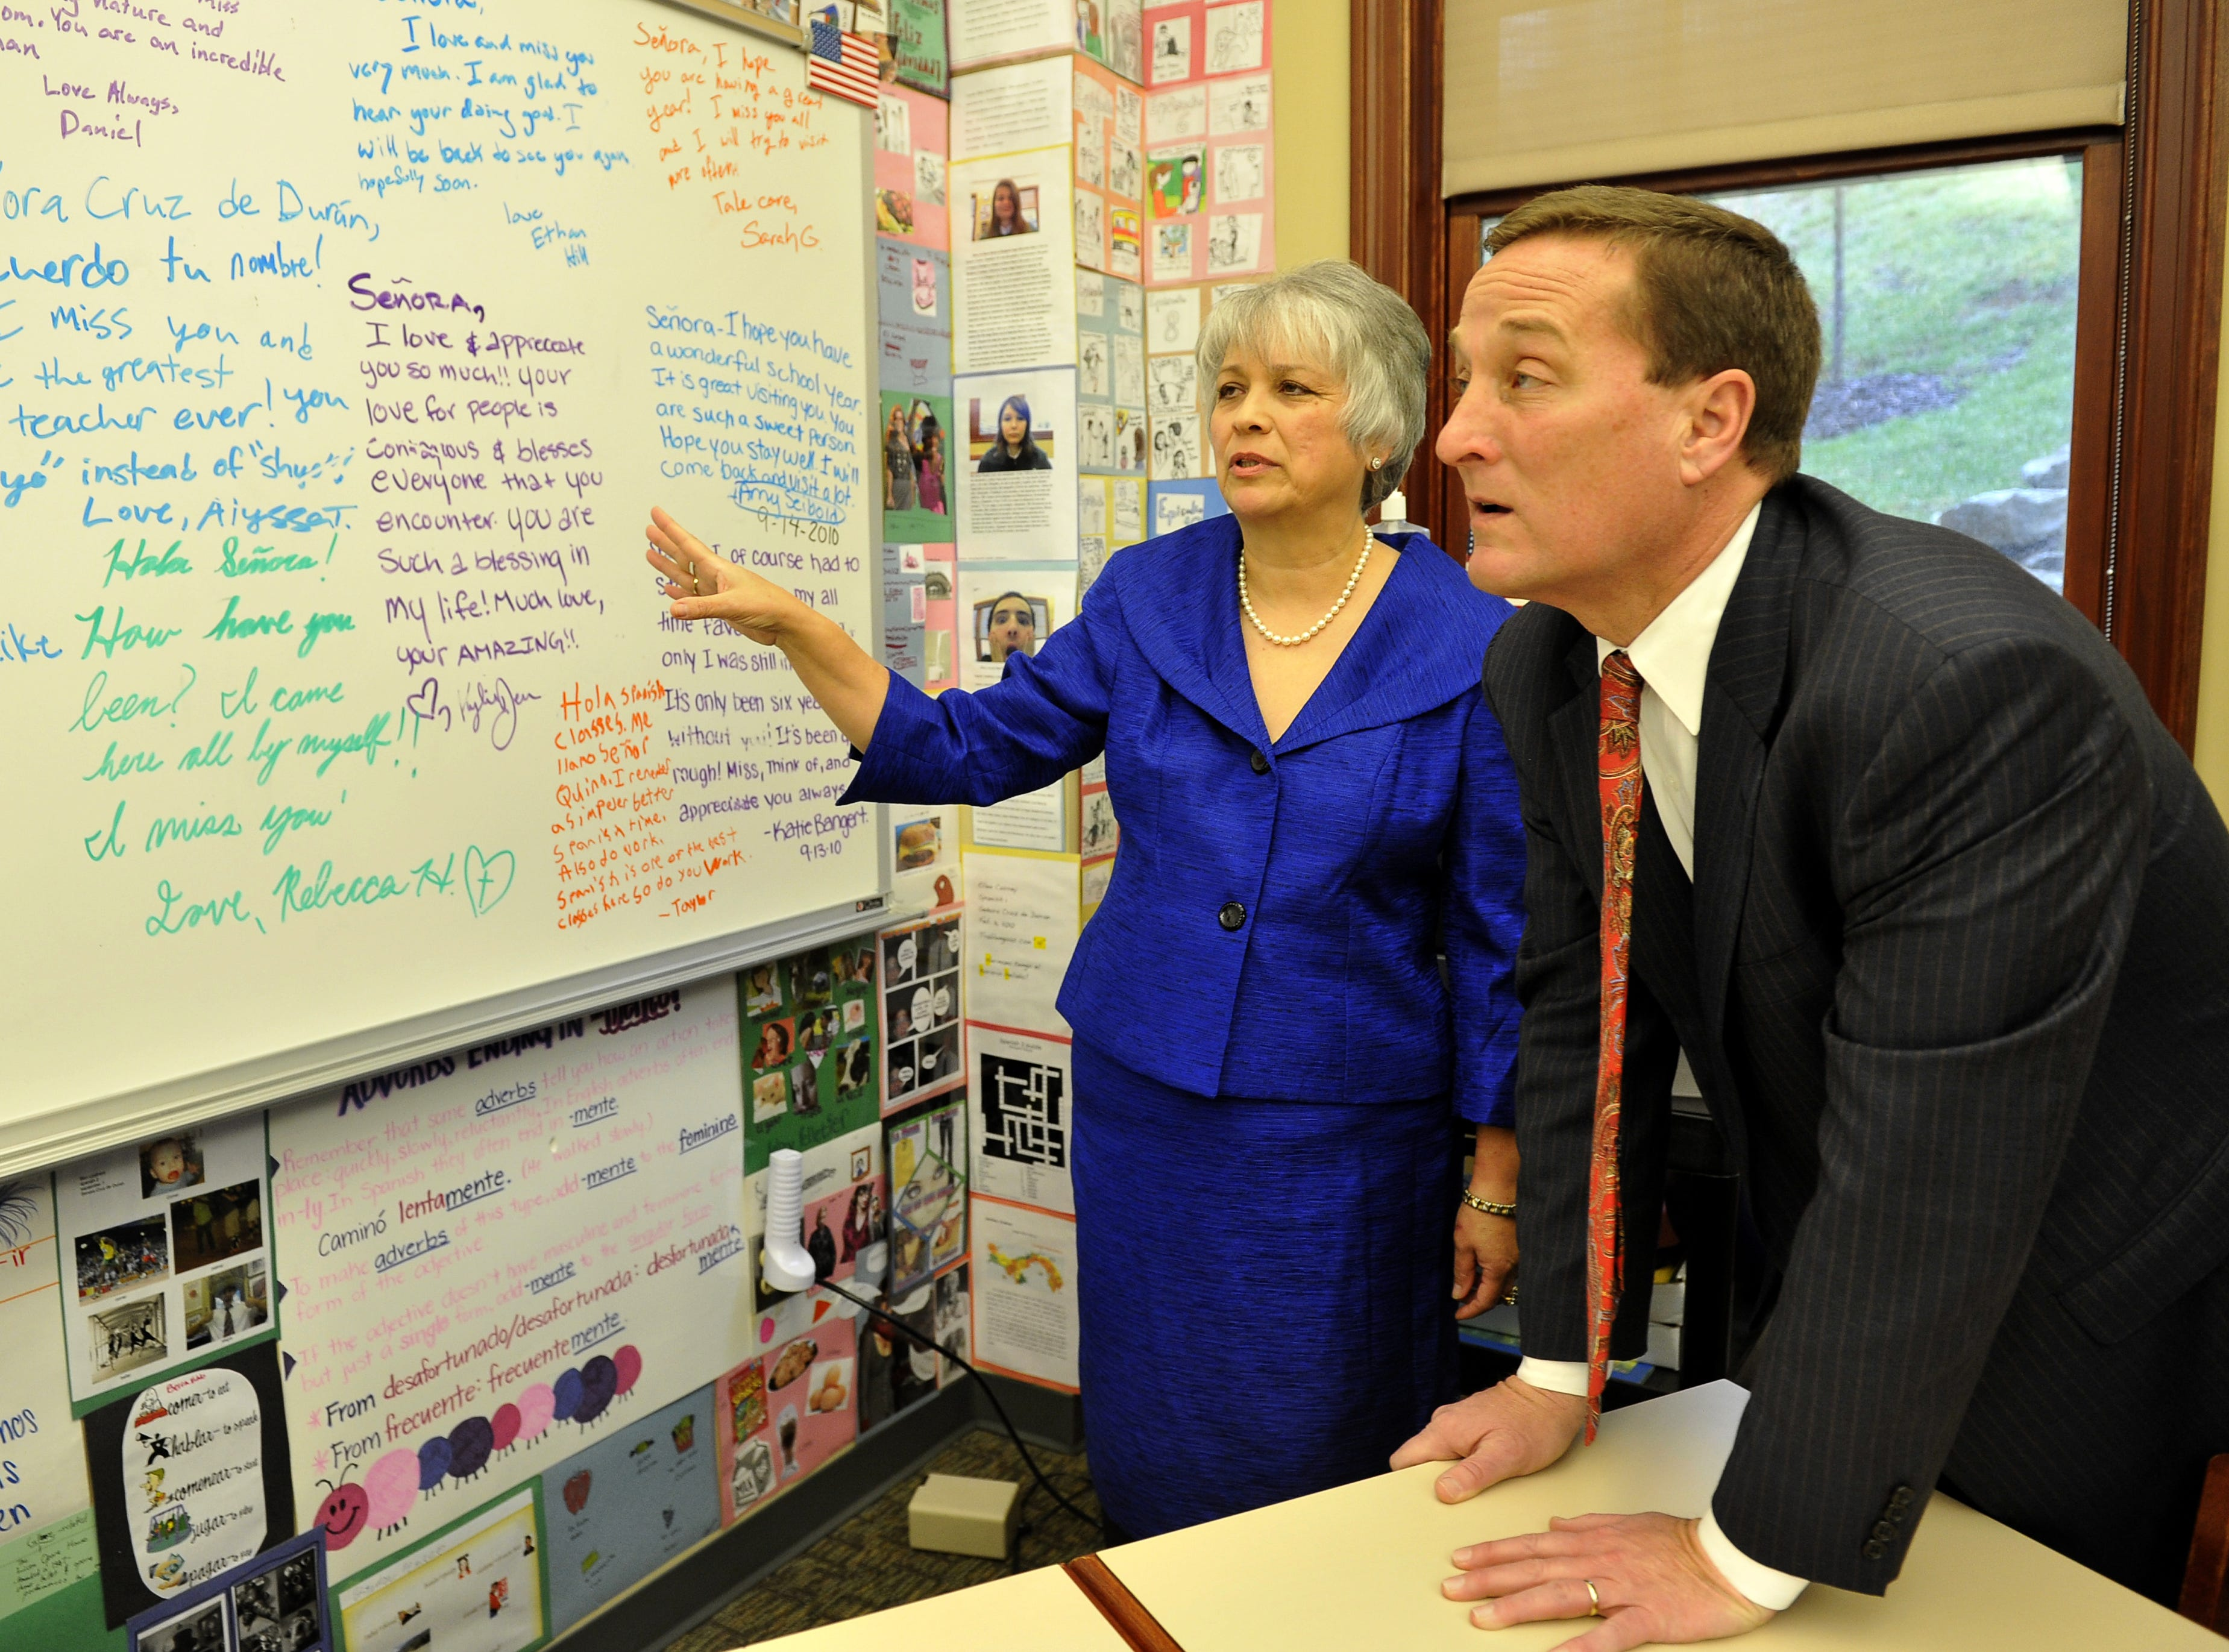 Spanish teacher Rita Cruz de Duran shows her classroom to Don MacLachlan, executive vice president of the Tennessee Titans, after she received an award for being named the Titans teacher of the year during a ceremony at Currey Ingram Academy in 2011.